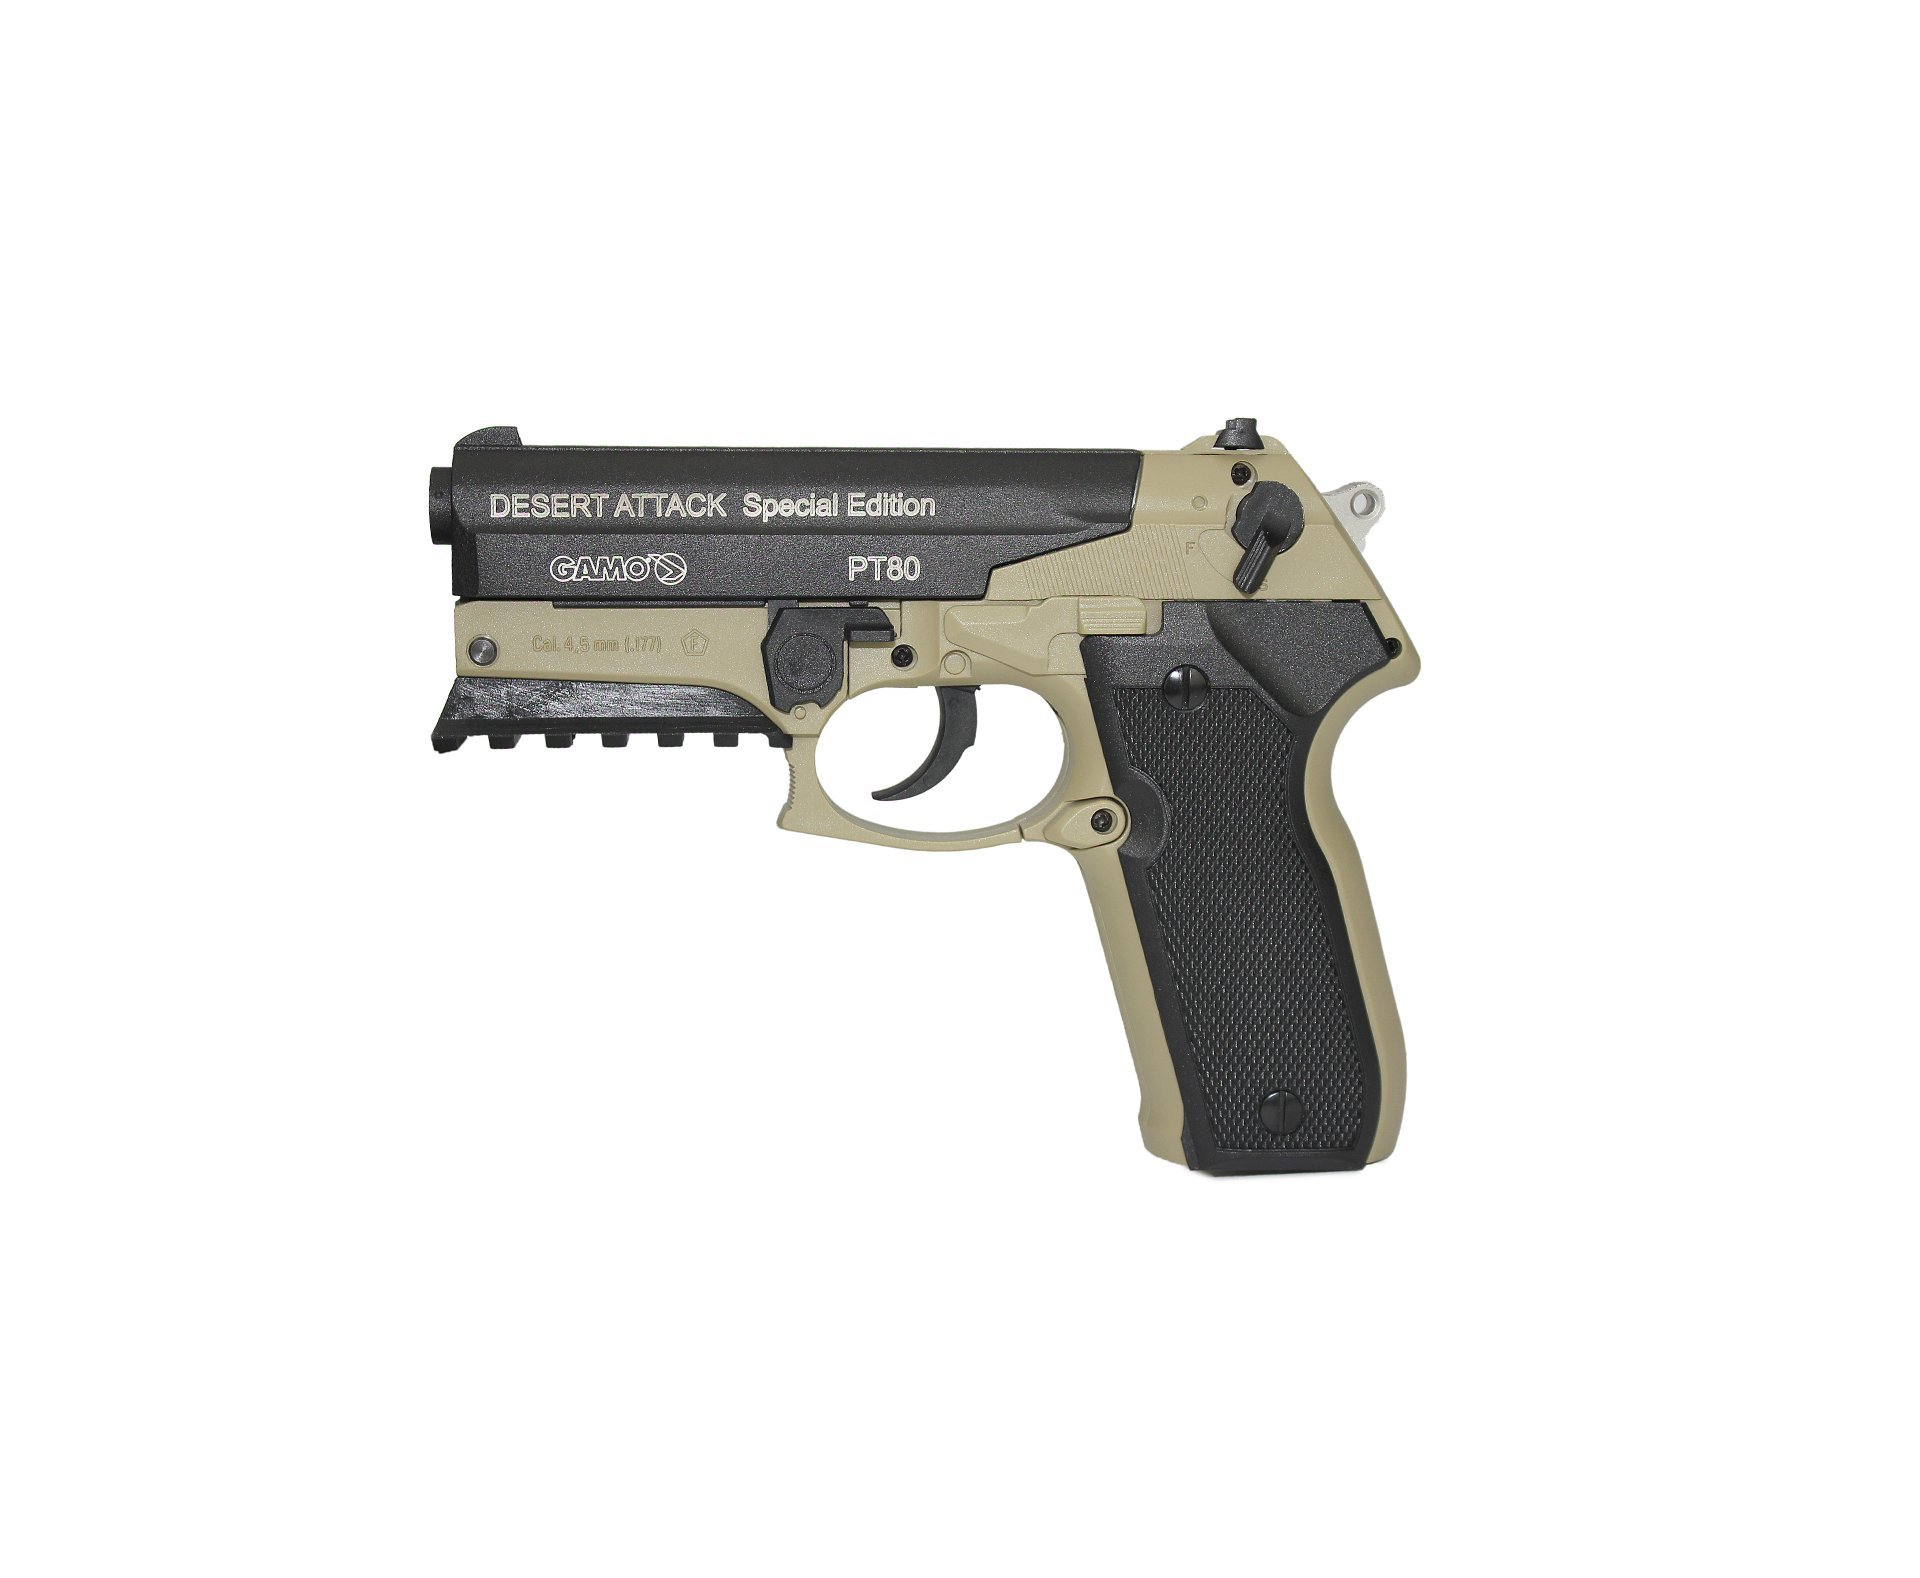 Pistola De Co2 Gamo Pt-80 Desert Attack Se 08 Tiros 4,5mm